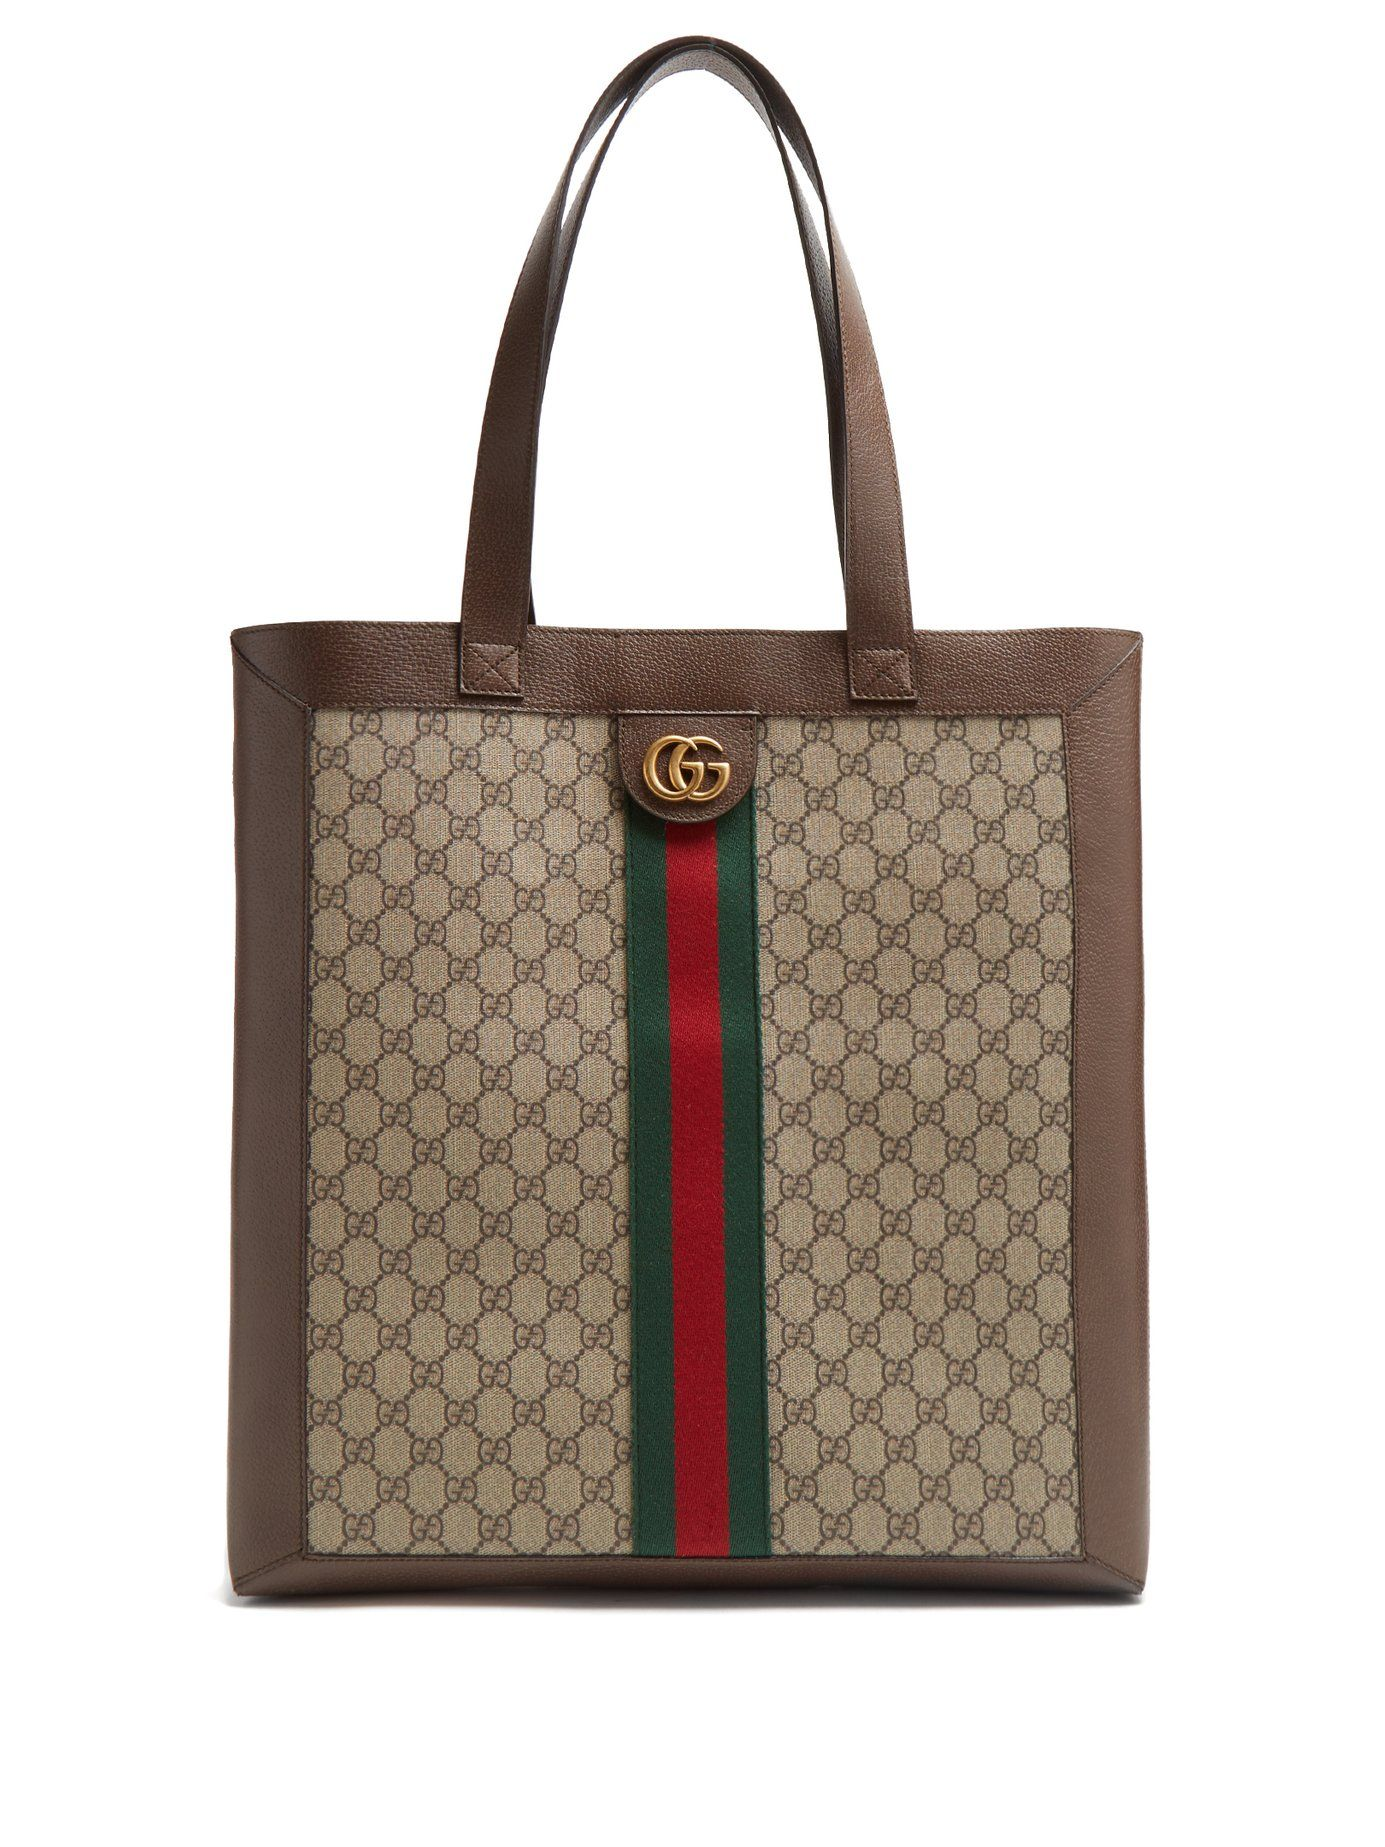 aae1786475da Designer Purses We Adore. Ophidia GG Supreme canvas and leather tote